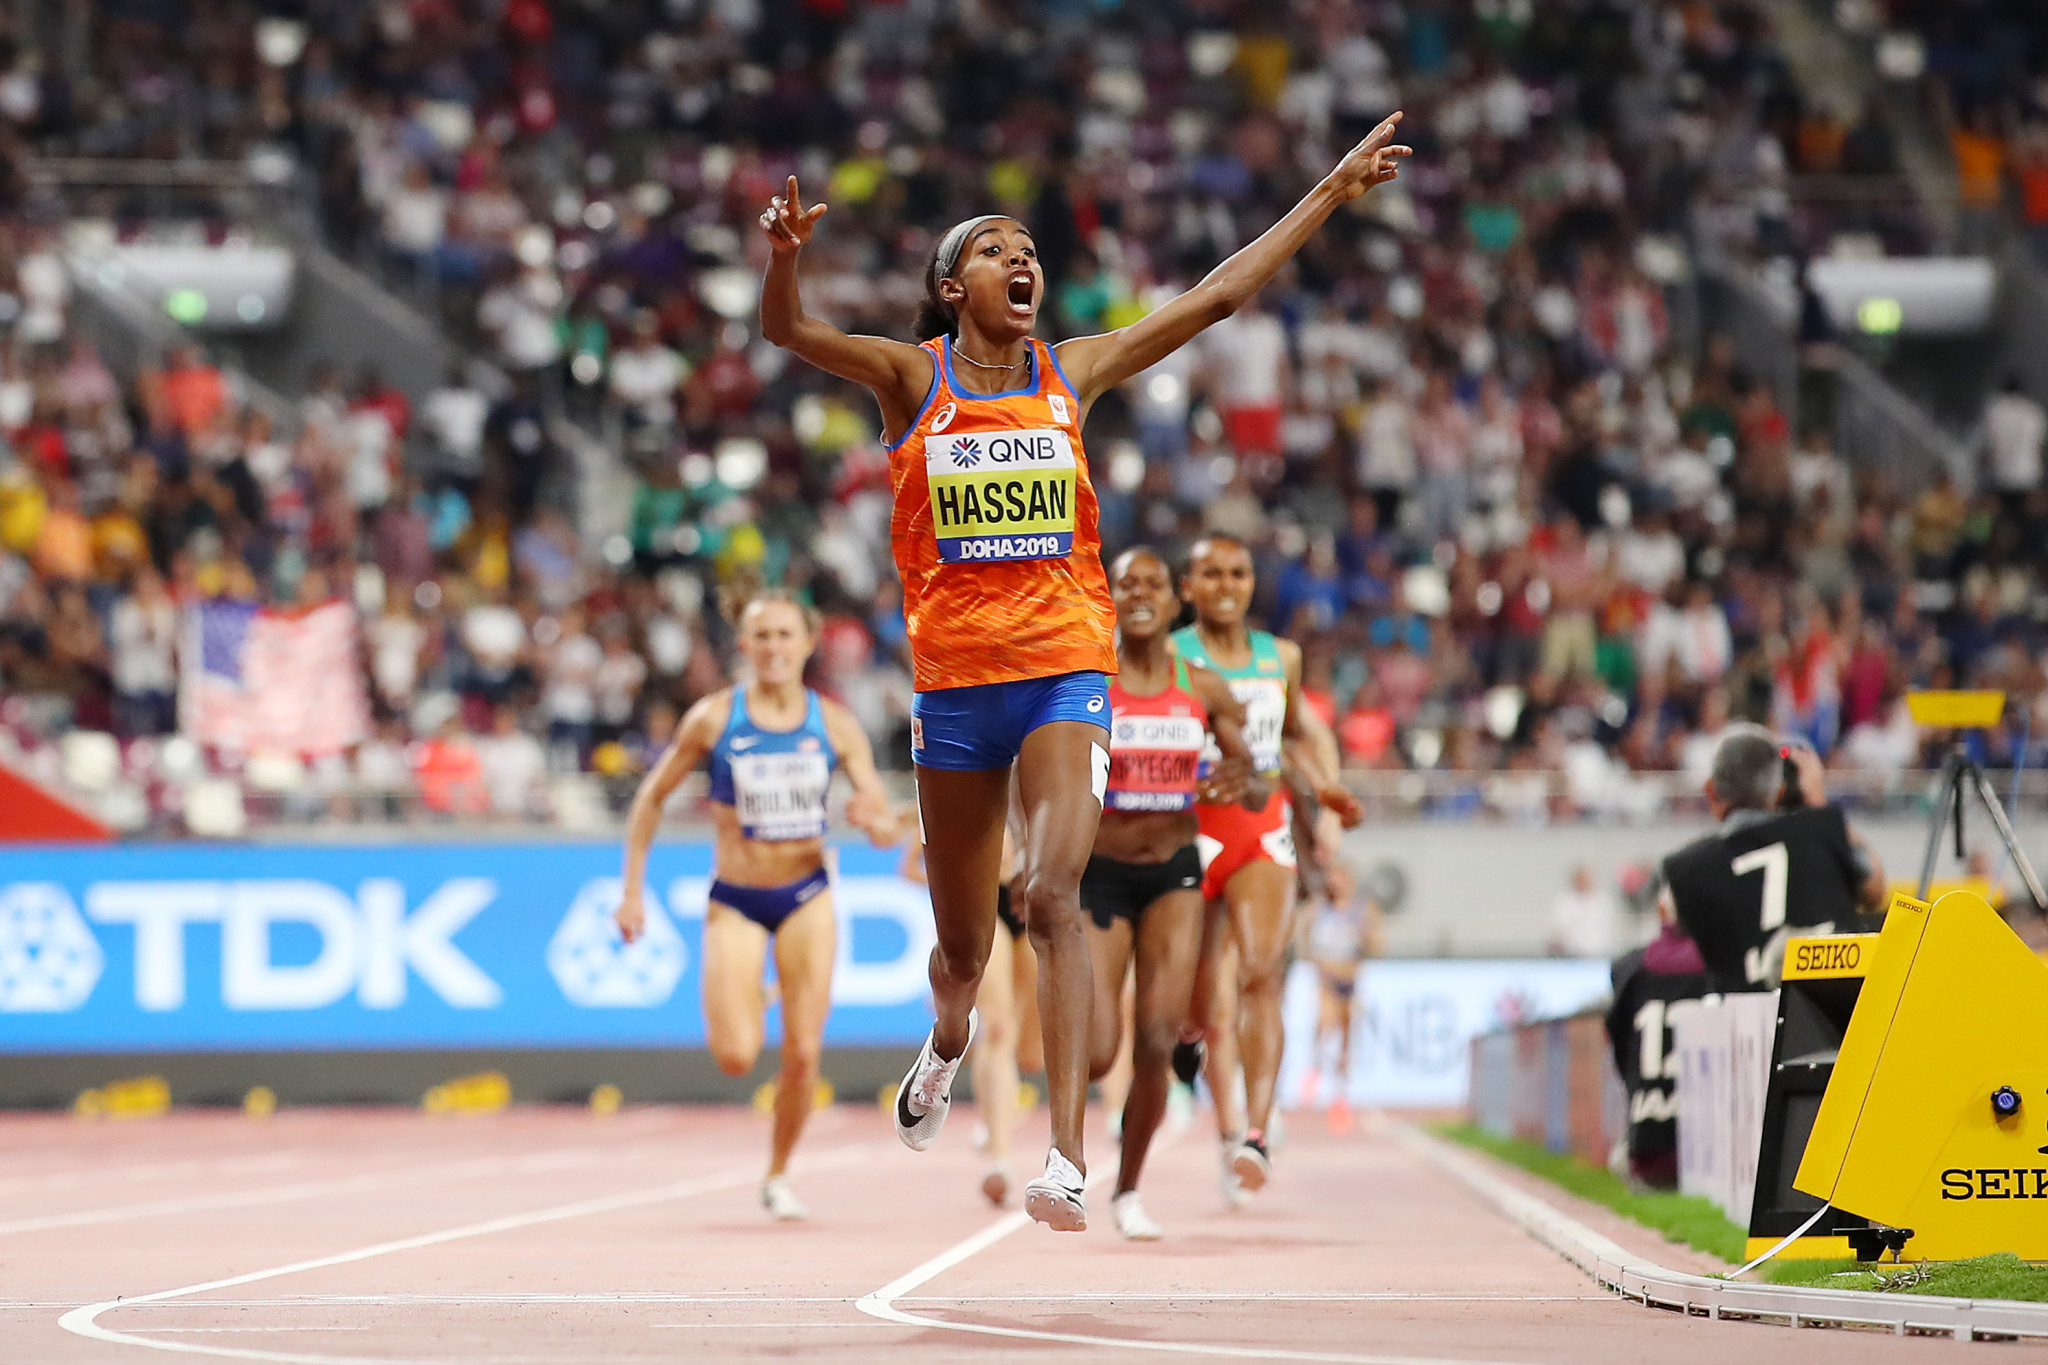 The Netherlands' Sifan Hassan, coached by Alberto Salazar since 2016, completed a unique 1500m and 10,000m double at the IAAF World Championships in Doha last month ©Getty Images